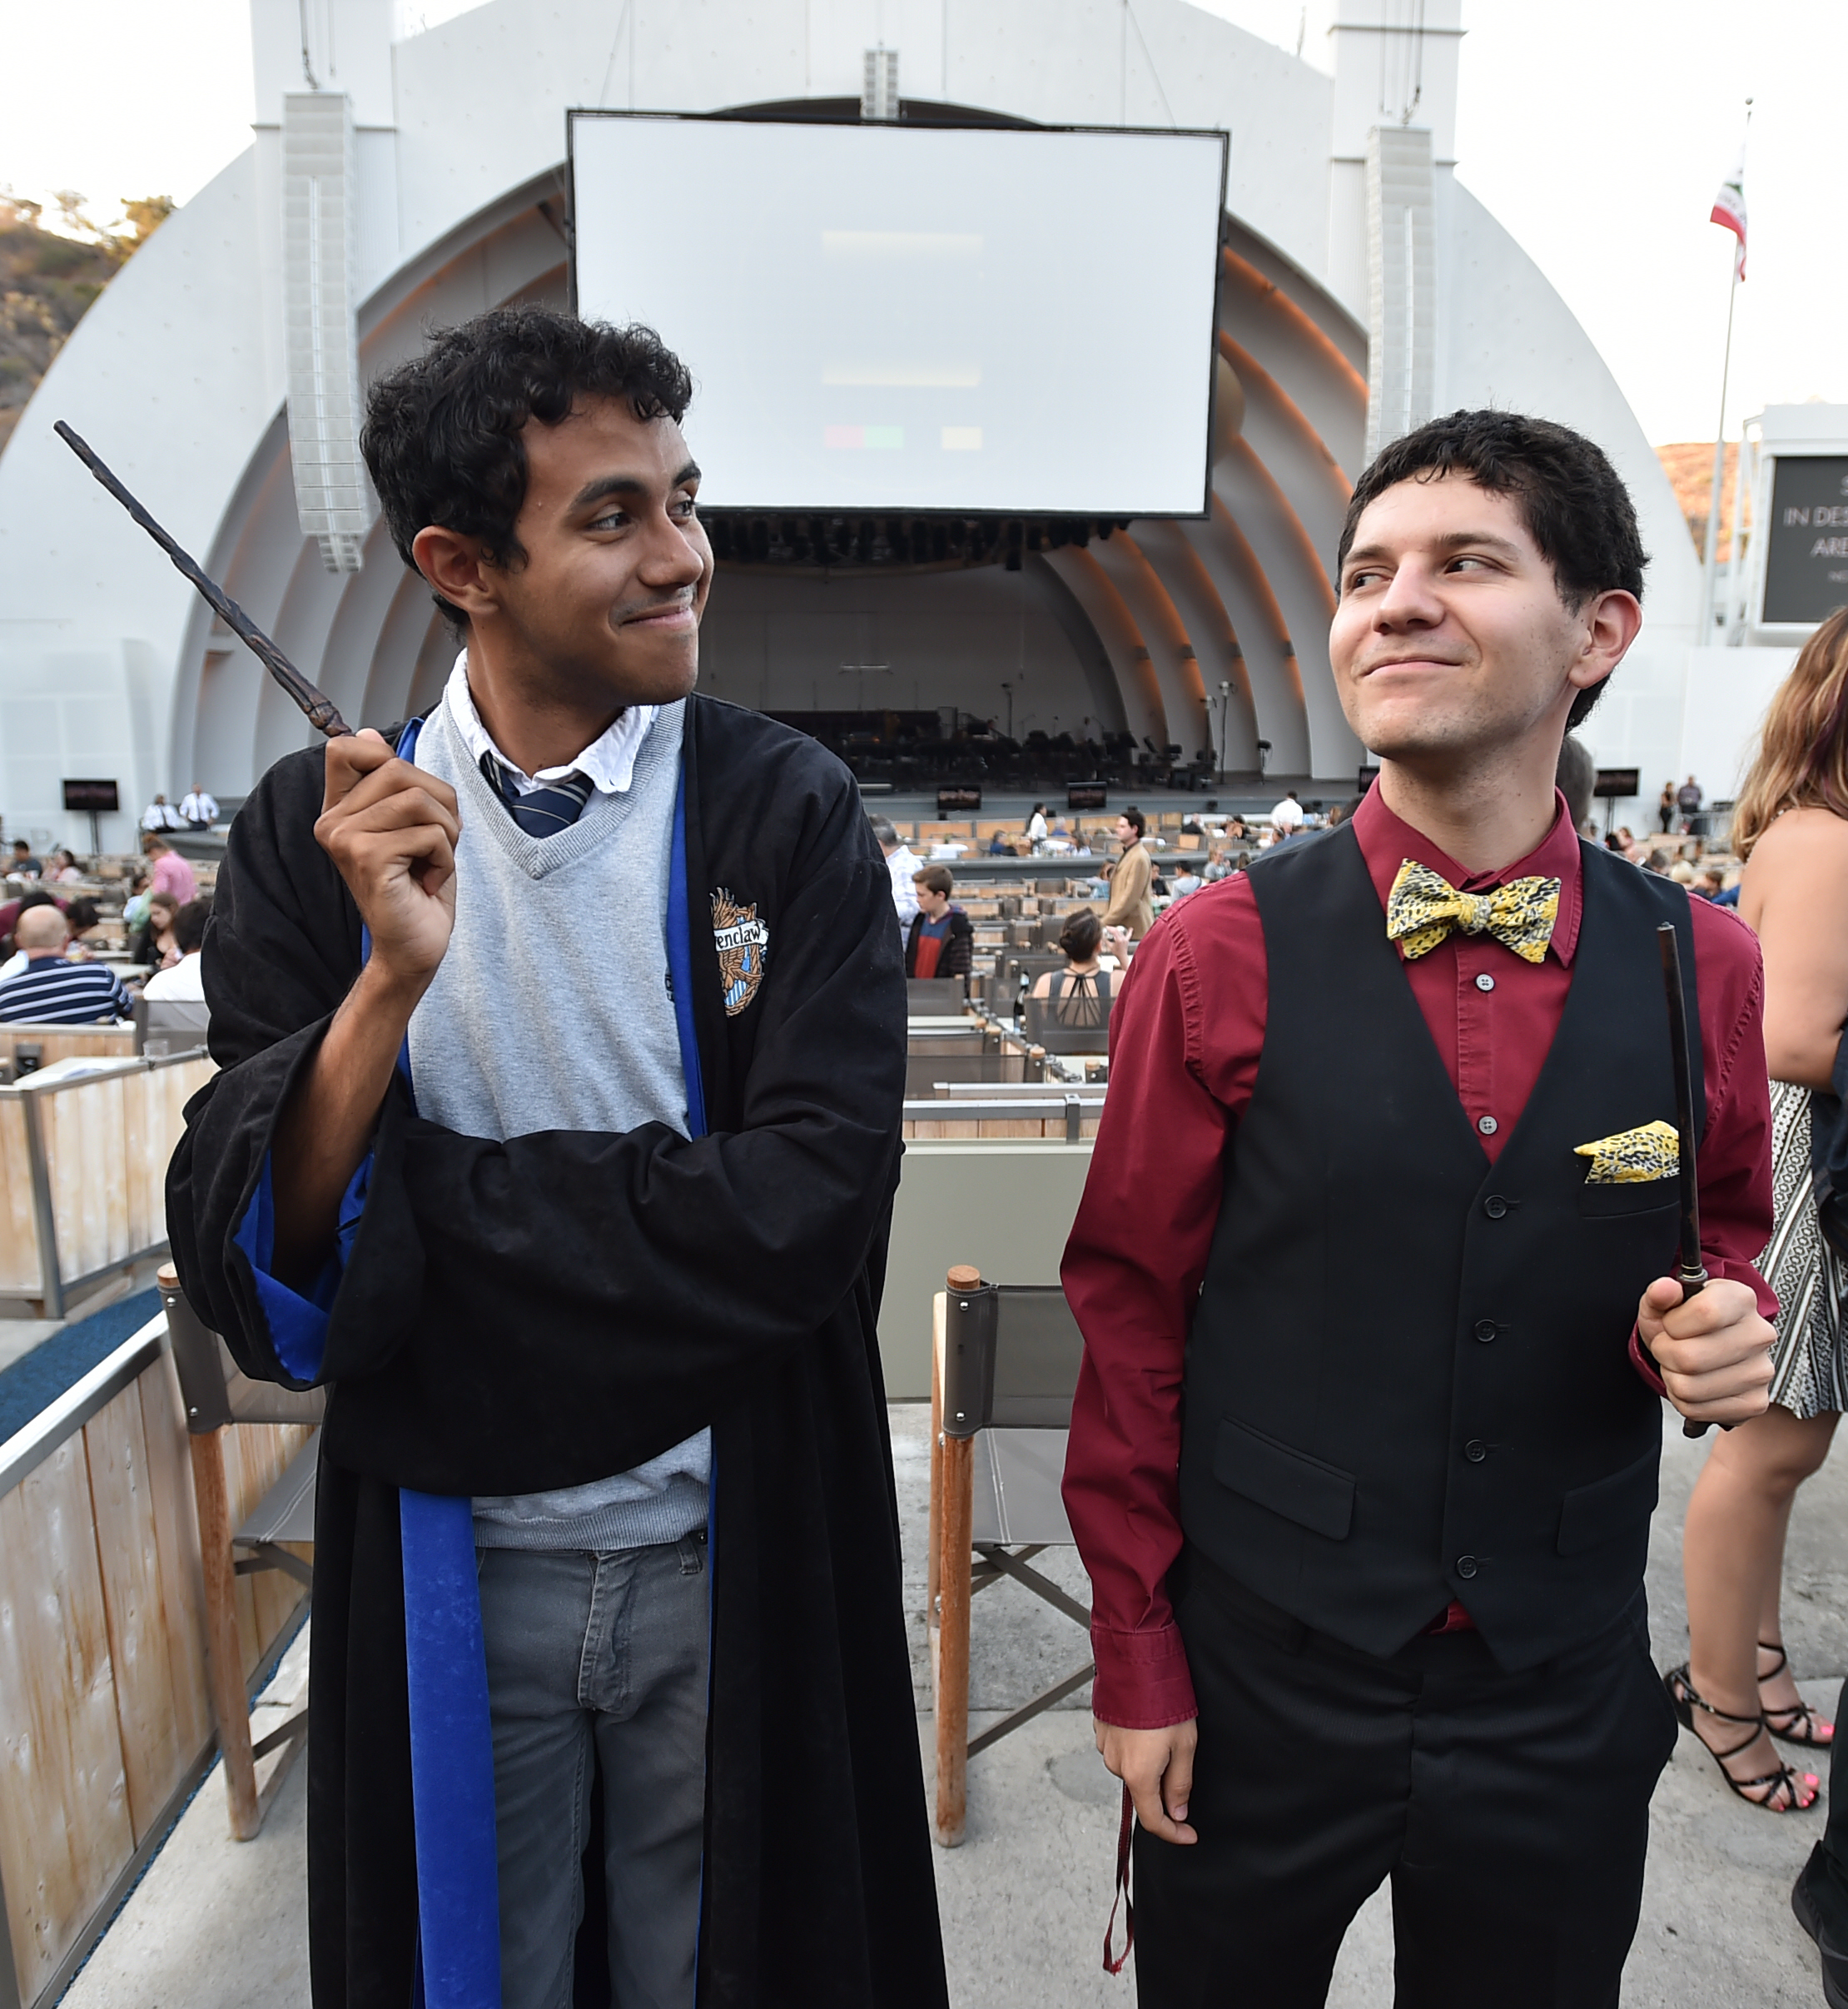 Two Harry Potter fans, with wands, getting ready for the show at Hollywood Bowl